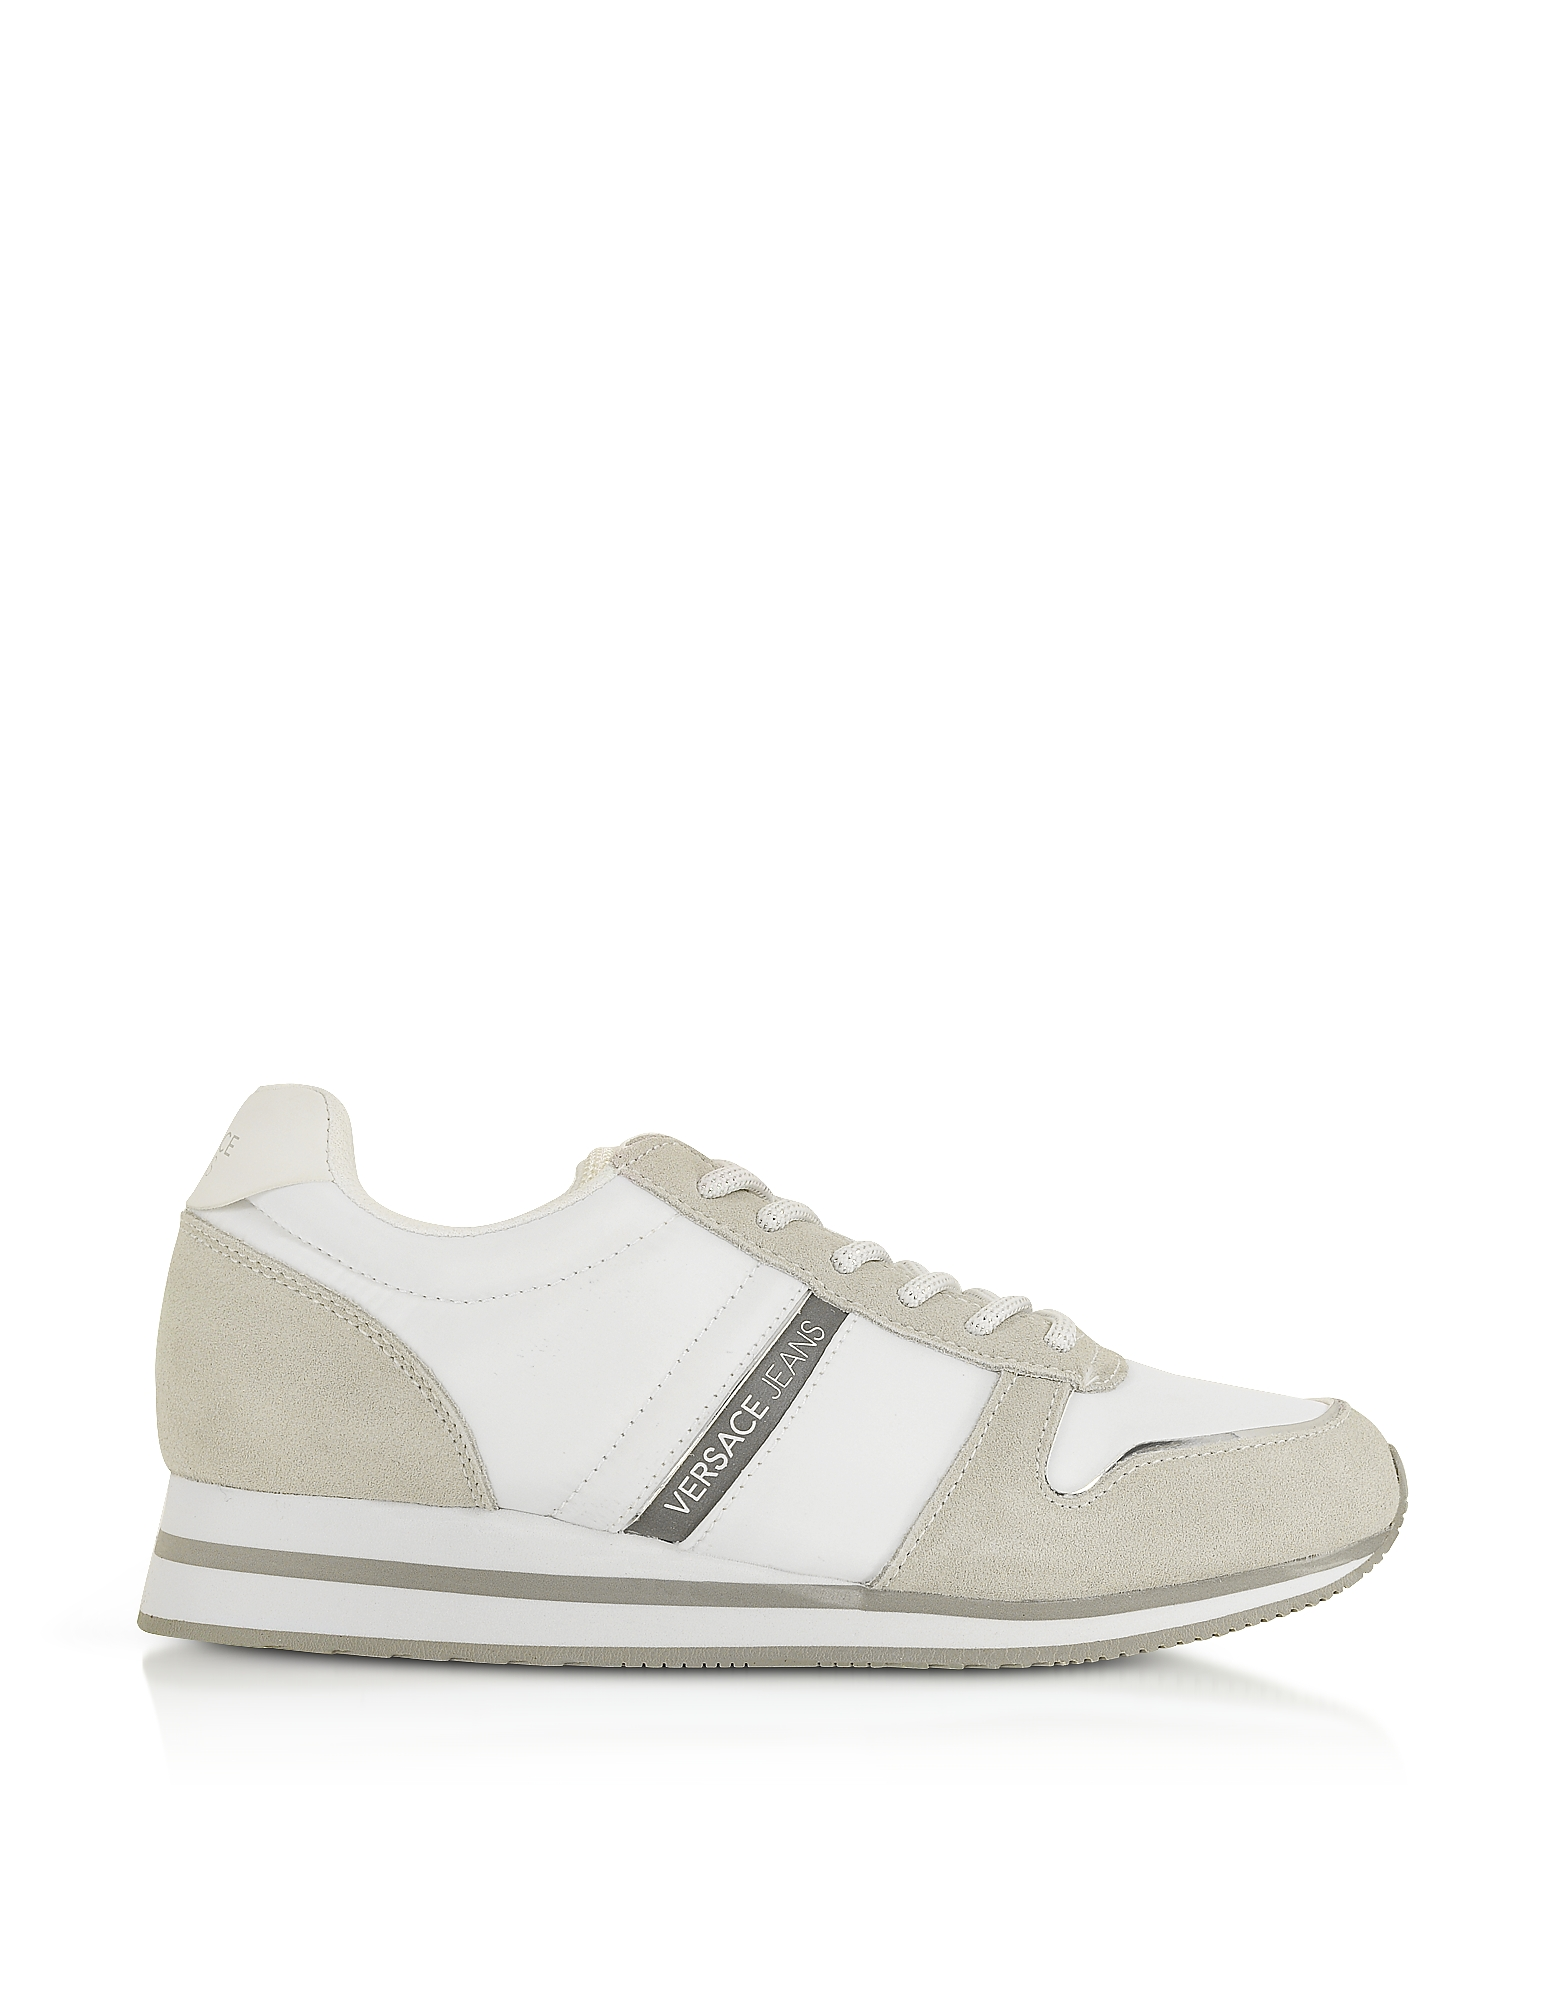 Versace Jeans Designer Shoes, Stella White Nylon and Suede Women's Sneakers